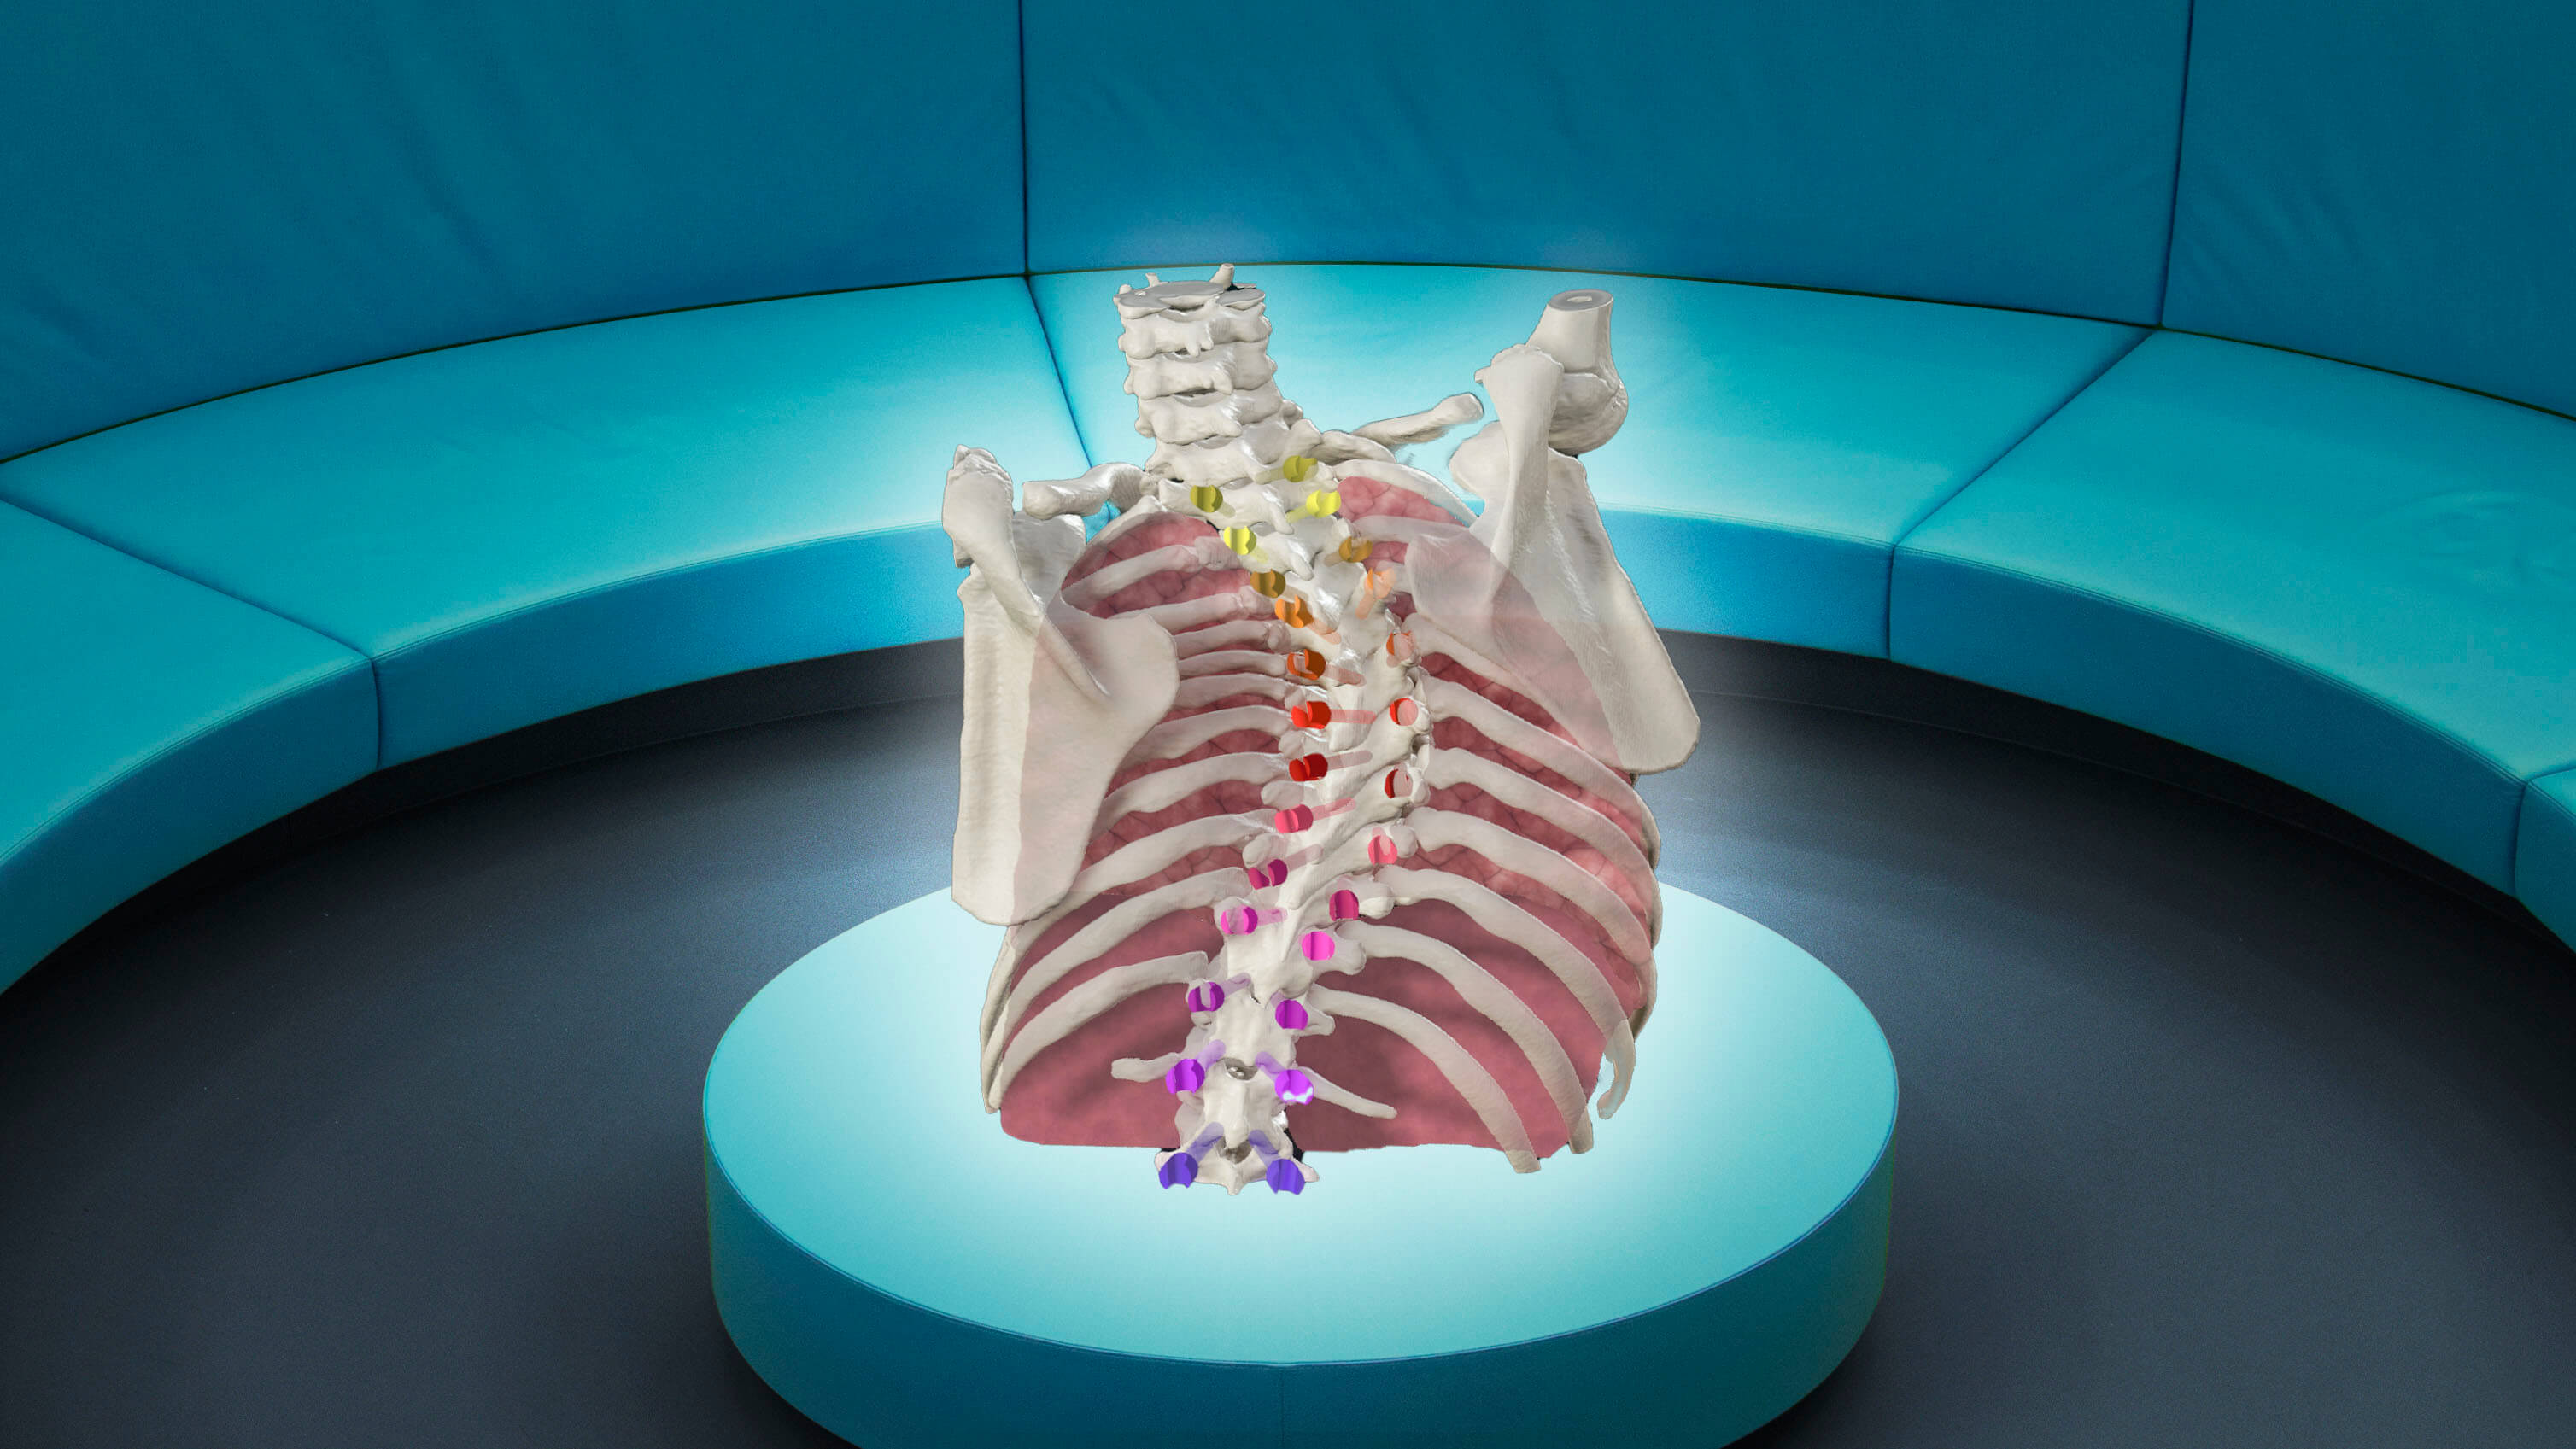 An augmented reality view of the bones of a human torso showing scoliosis